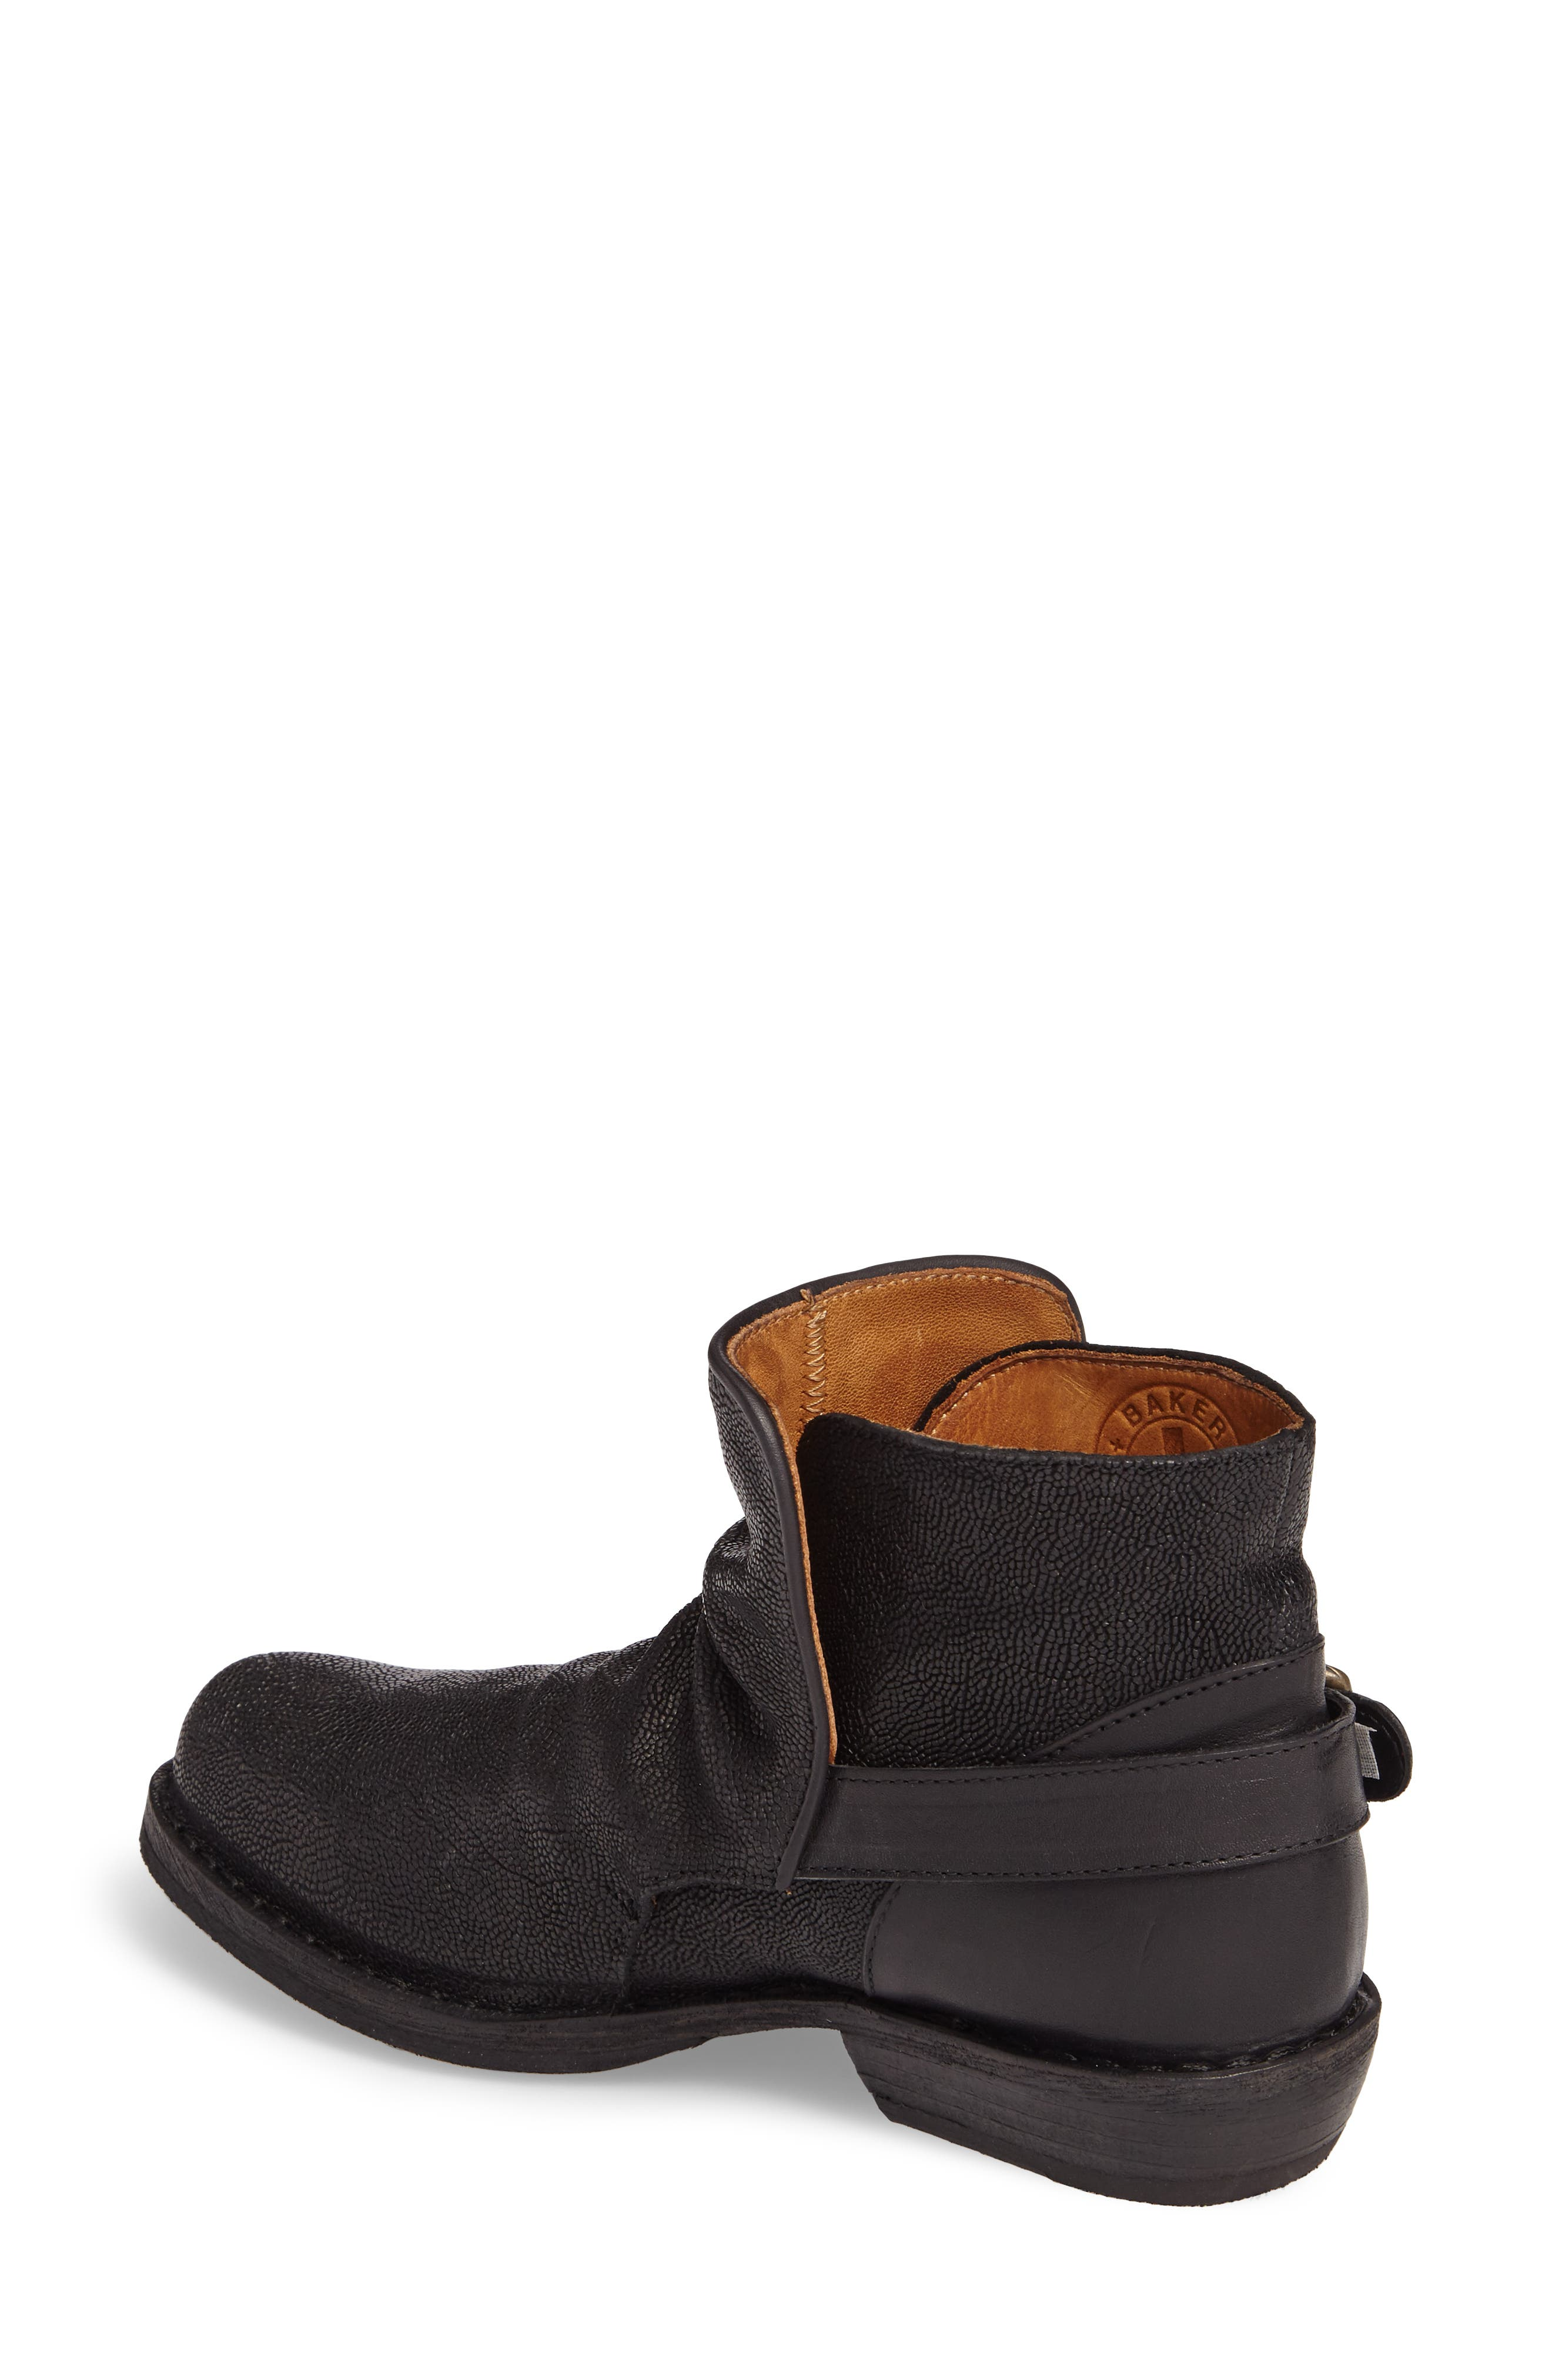 Alternate Image 2  - Fiorentini + Baker 'Carol' Ankle Boot (Women)